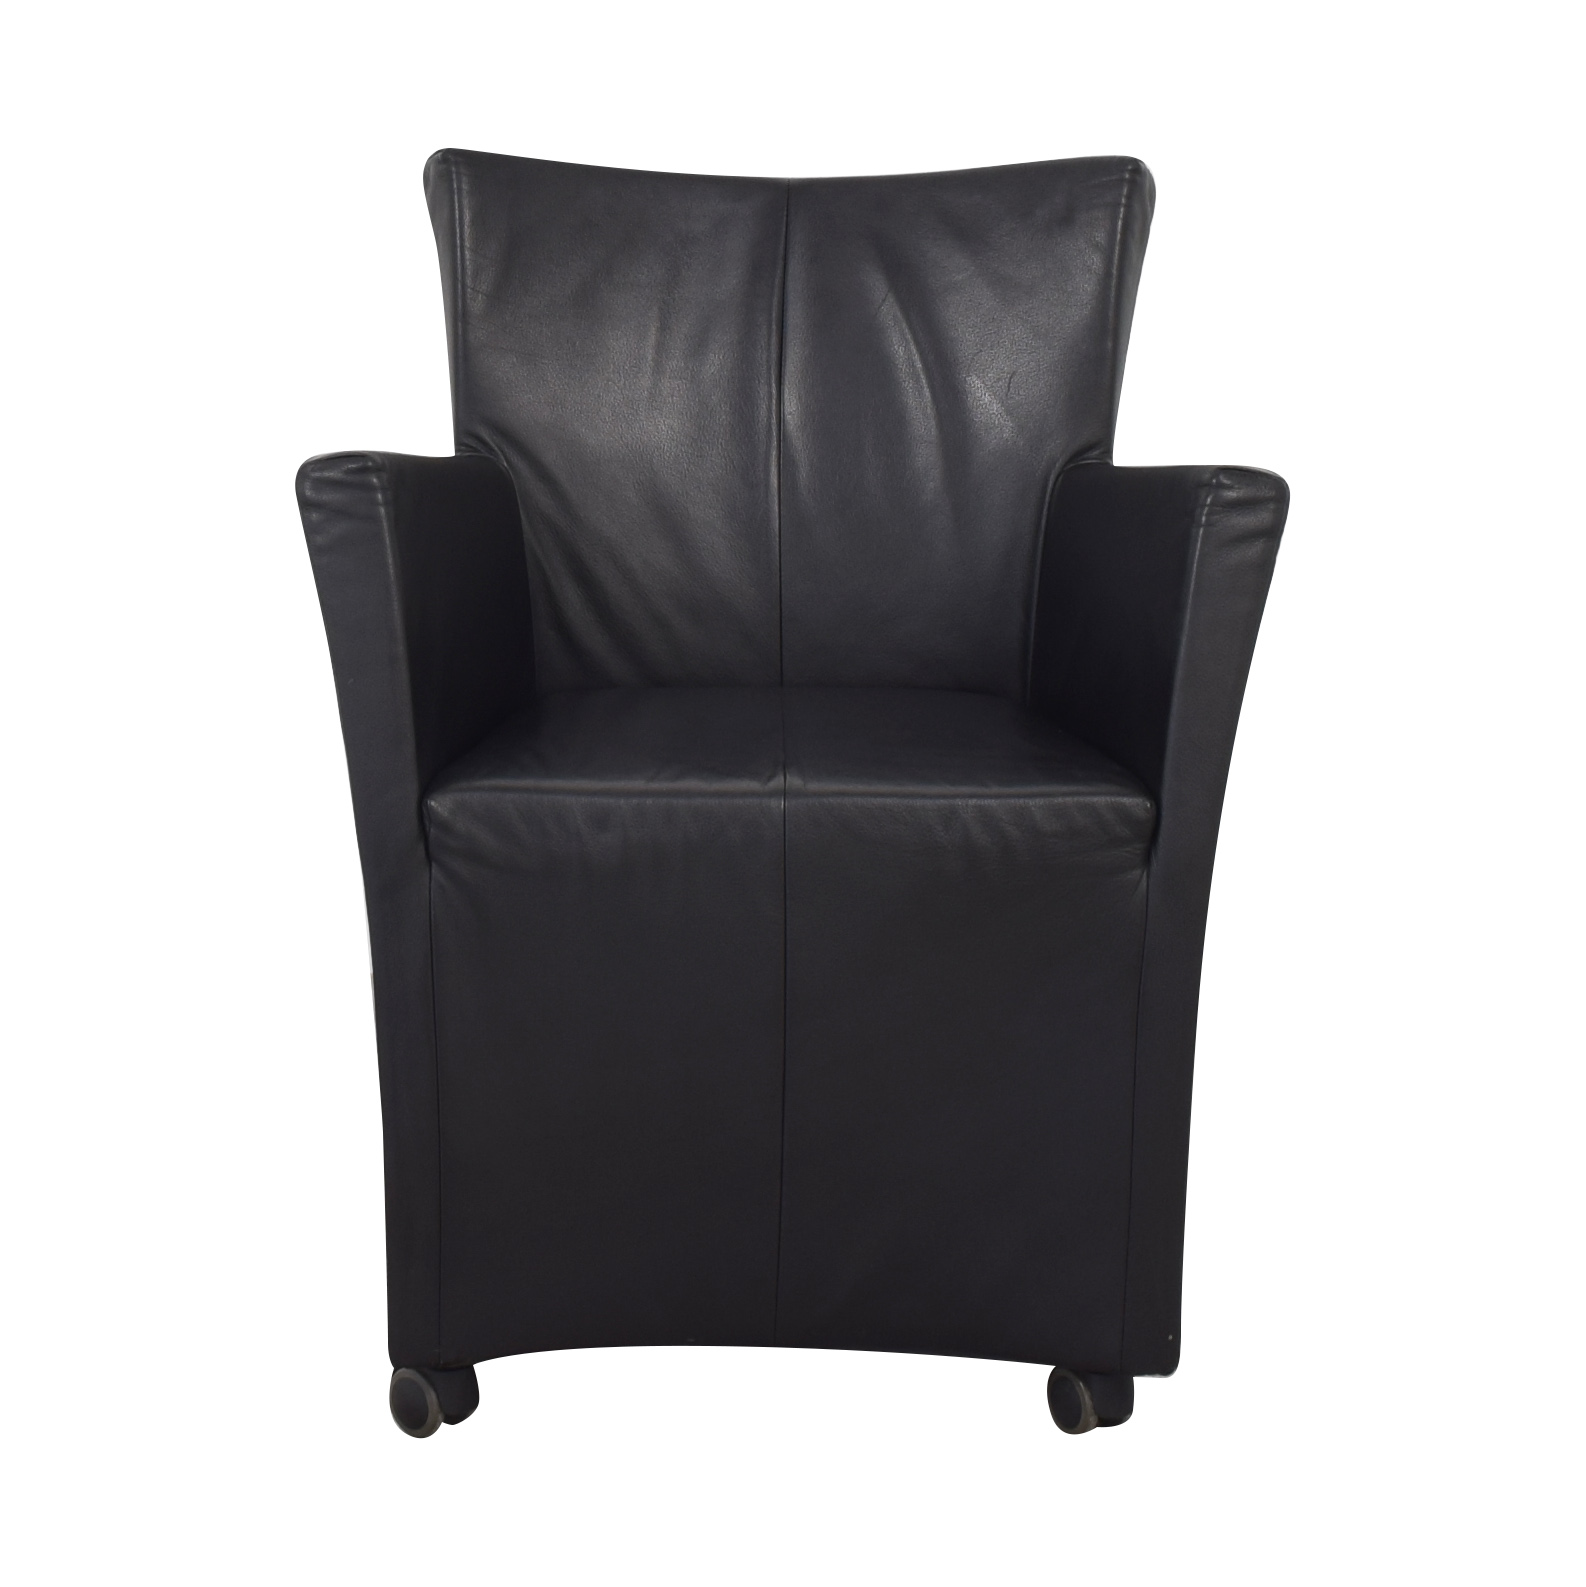 Montis Montis Sting Arm Chair dimensions